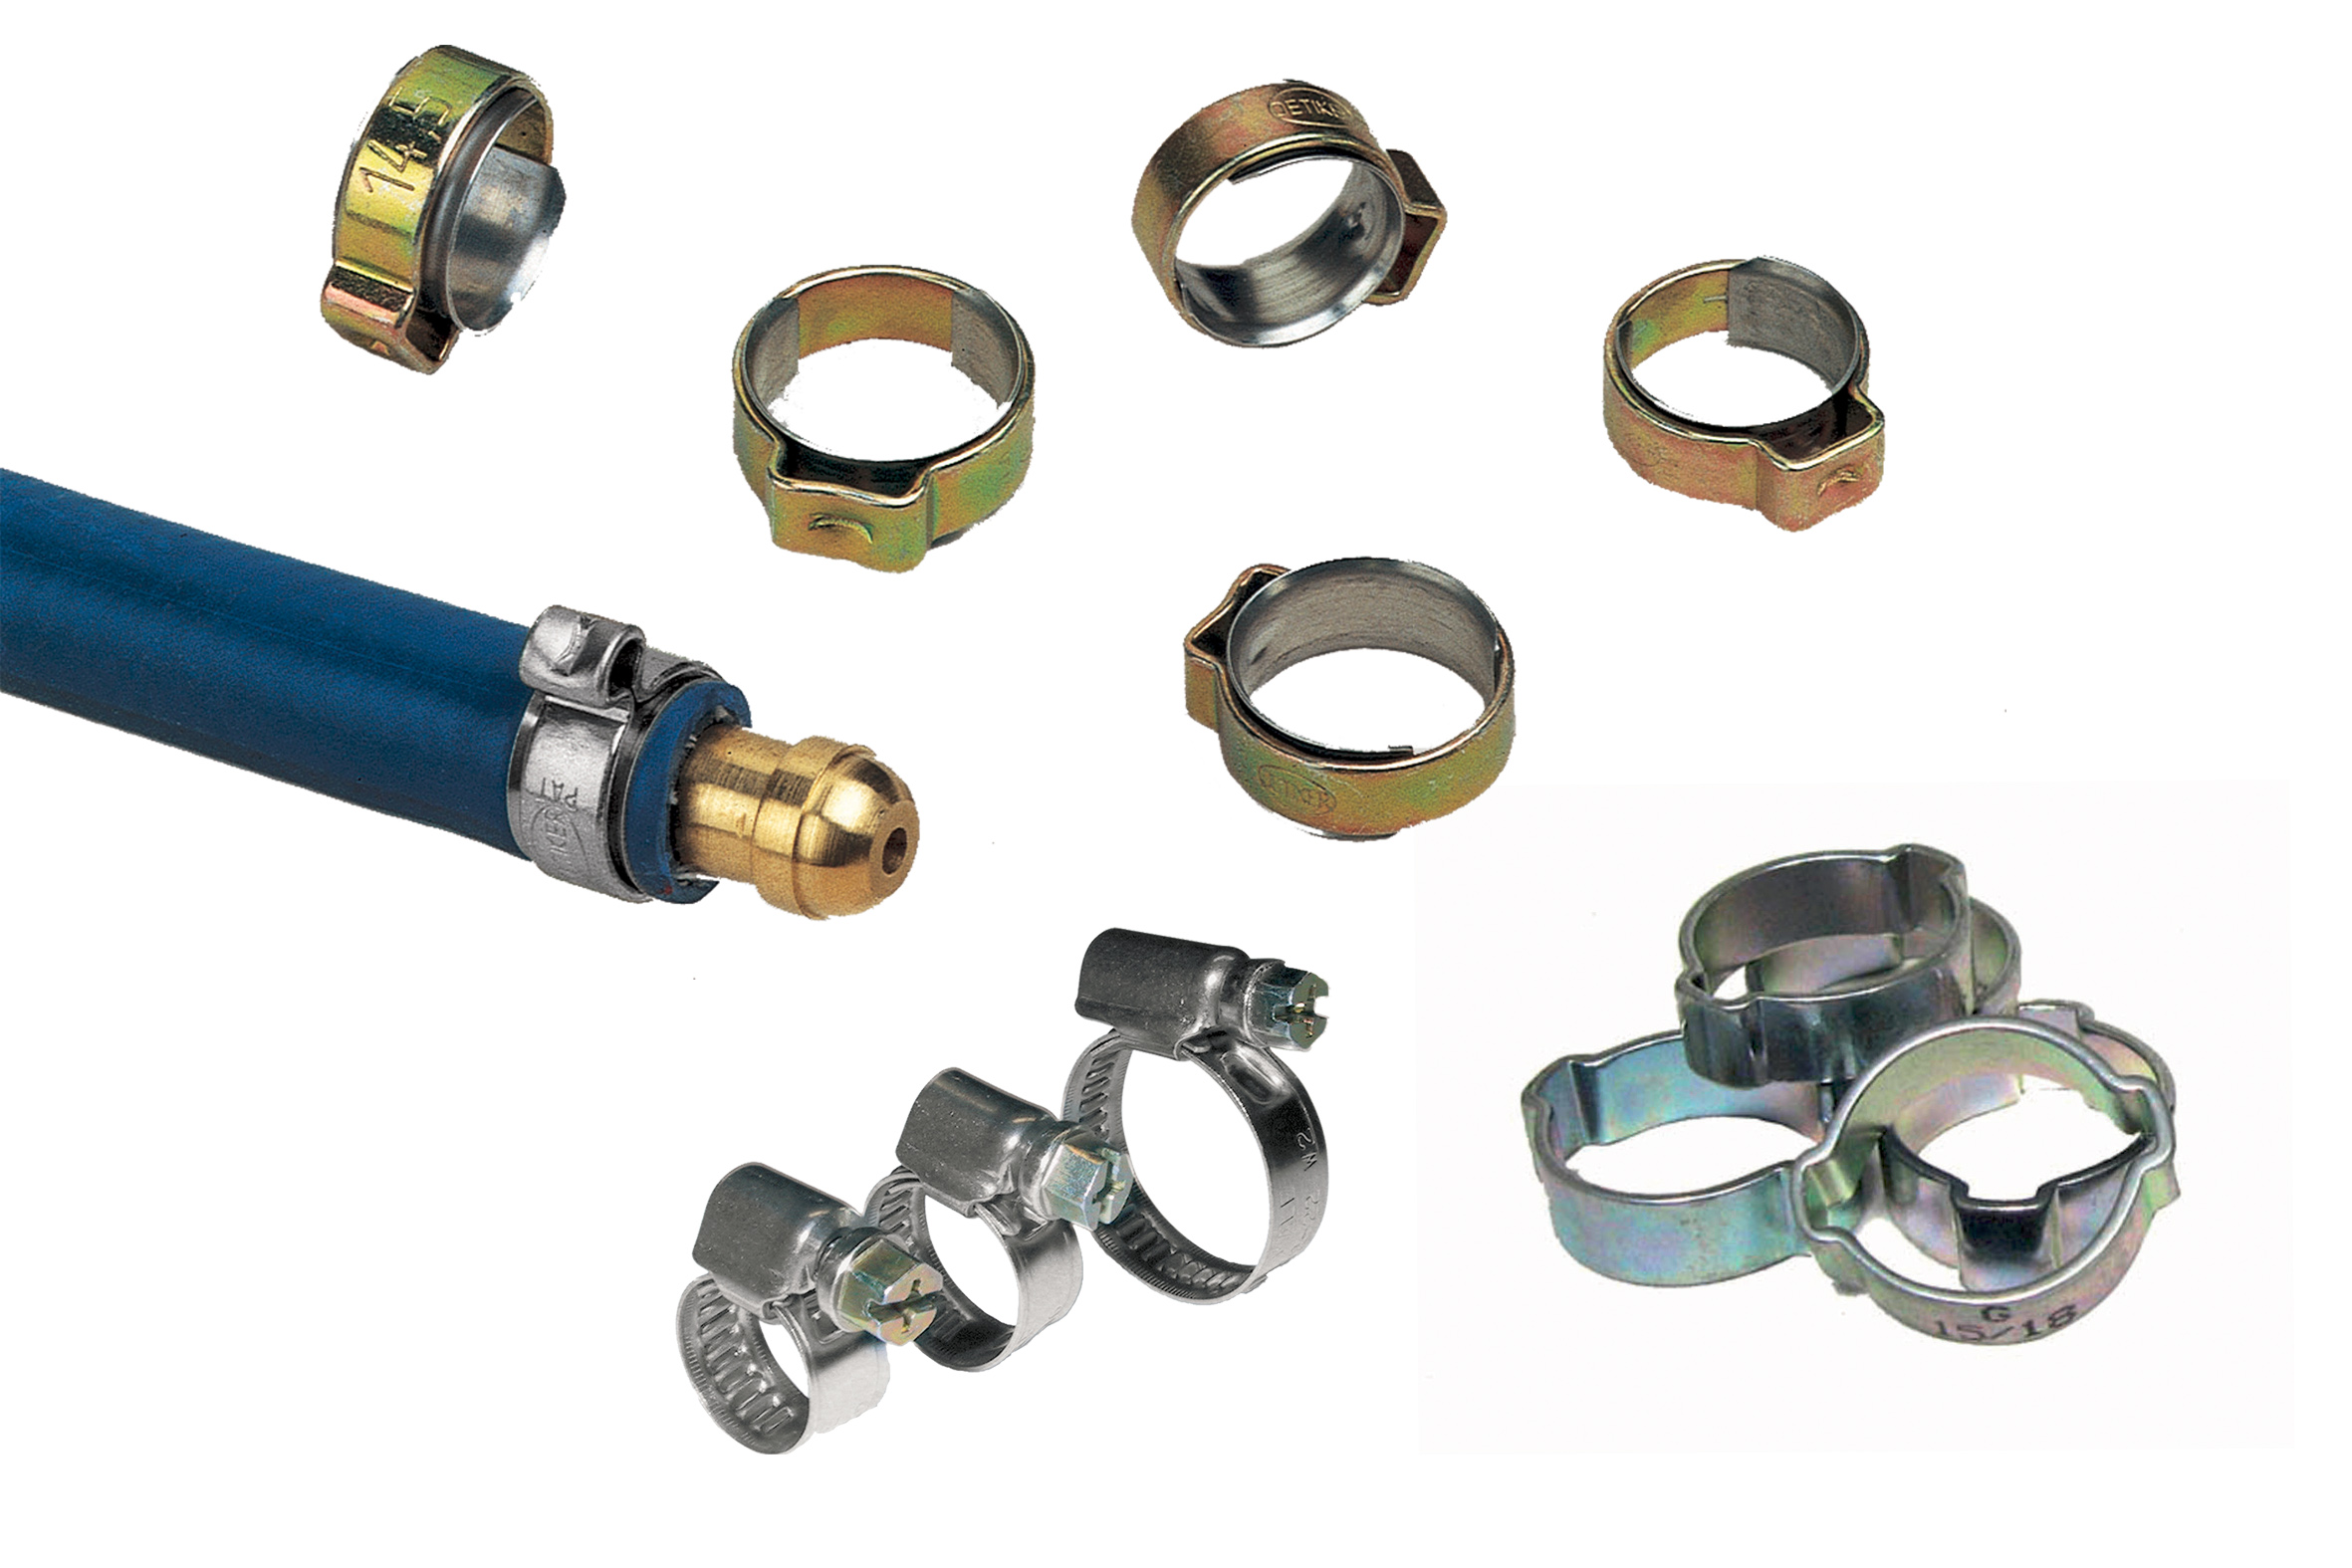 HOSE CLIPS page image